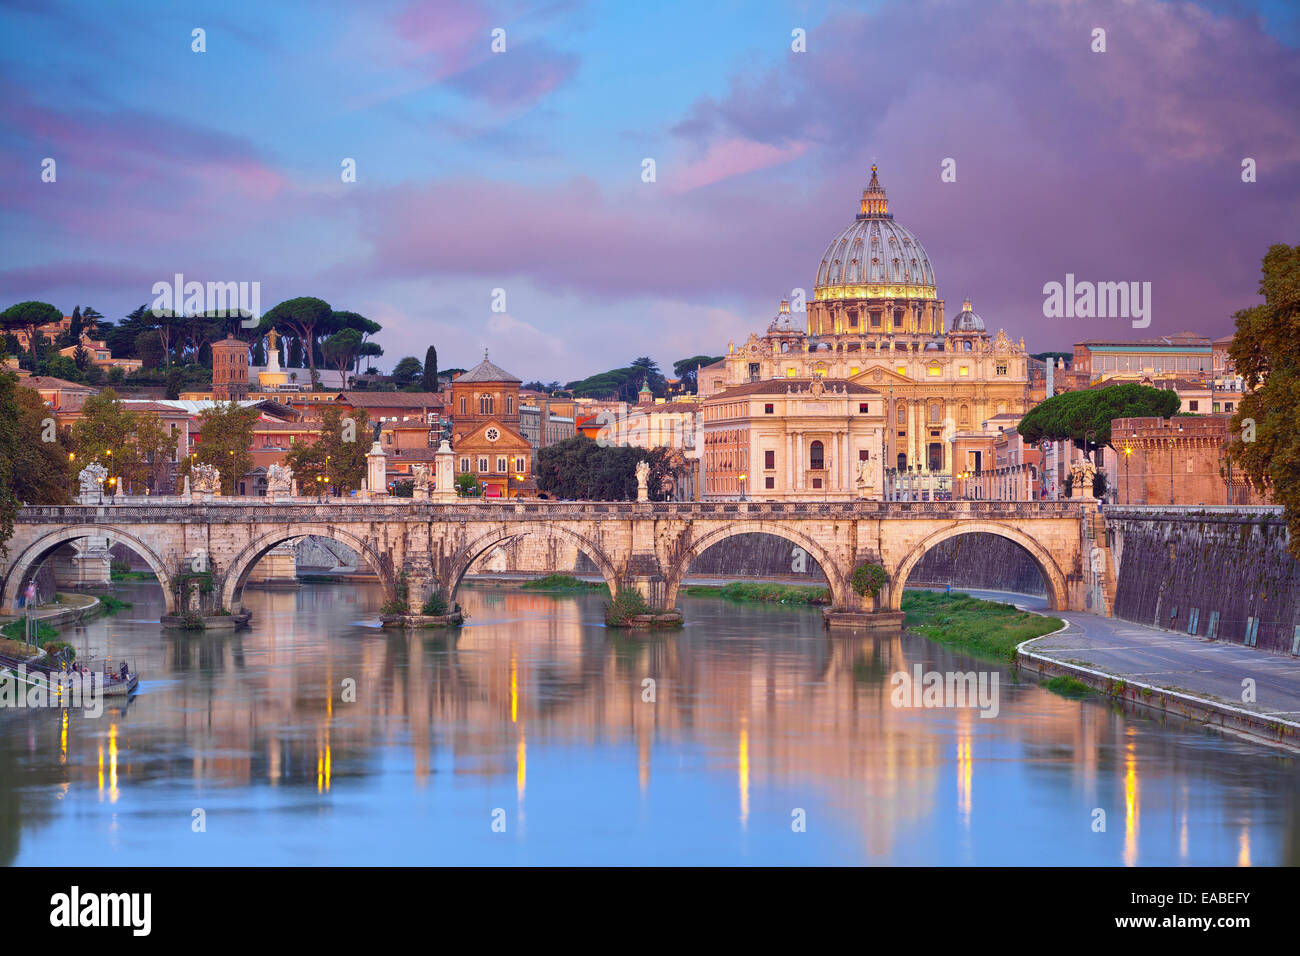 Rome. View of Vittorio Emanuele Bridge and the St. Peter's cathedral in Rome, Italy during beautiful sunrise. - Stock Image